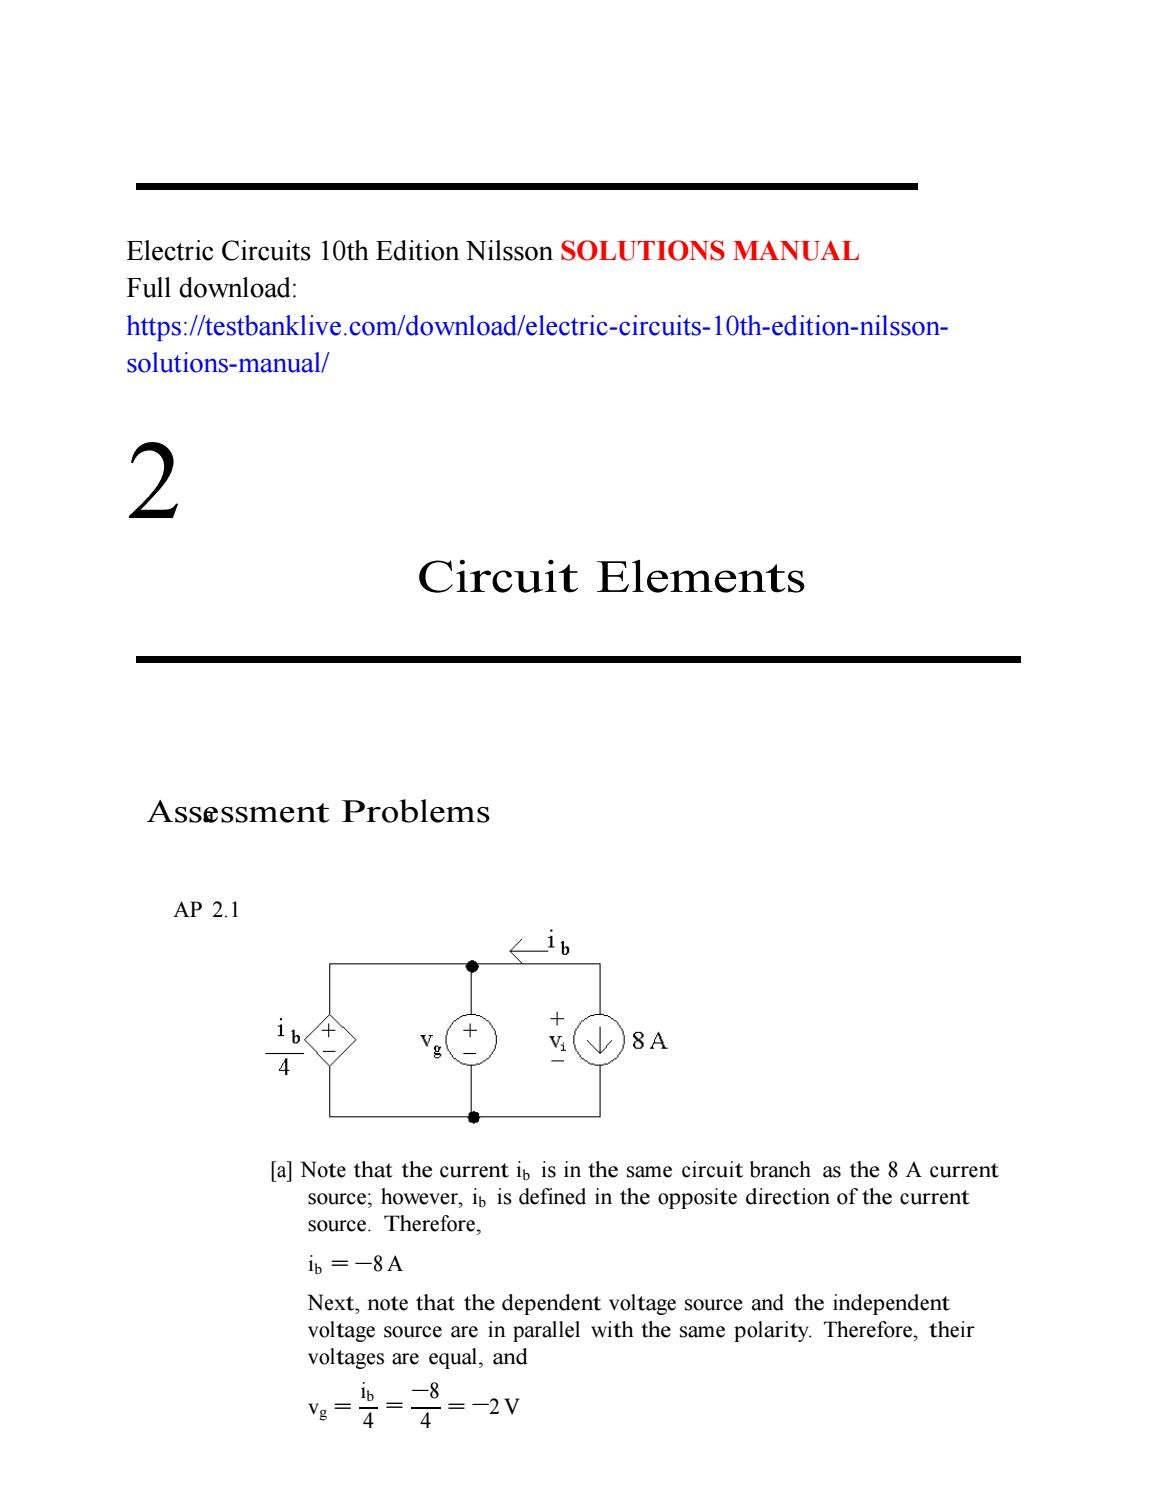 Electric Circuits 10th Edition Nilsson Solutions Manual By Windy4549 What Is Meant Circuit Issuu